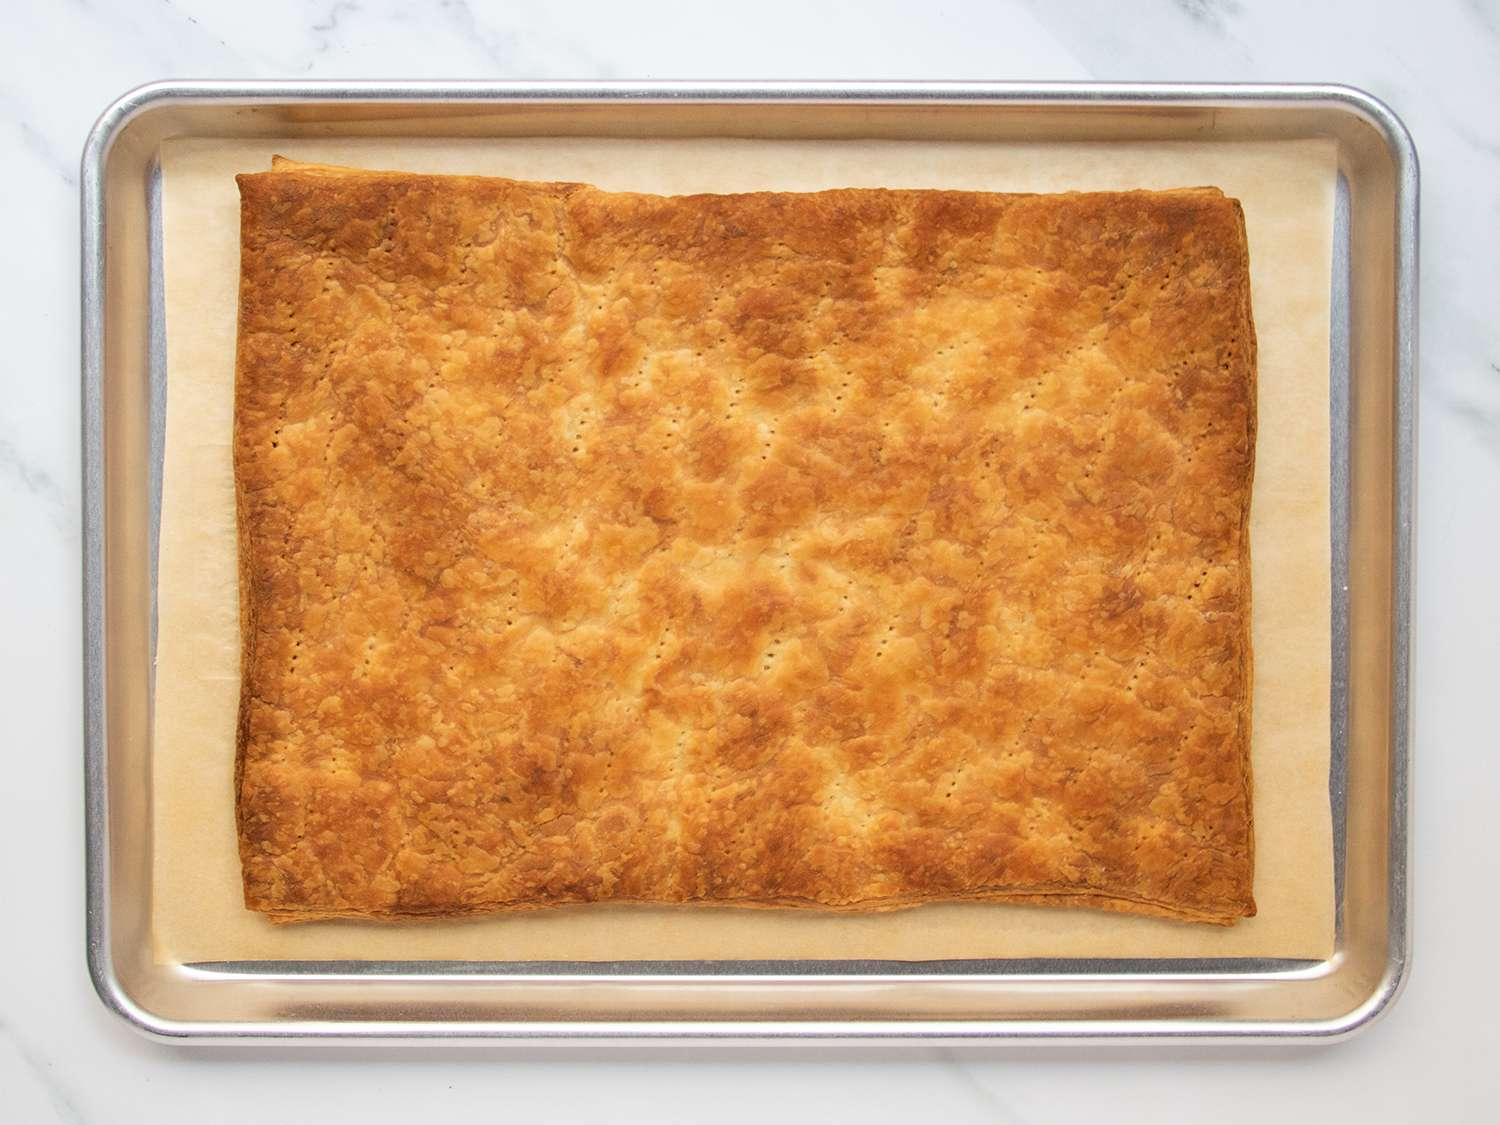 Fully baked puff pastry sheet set in rimmed baking sheet